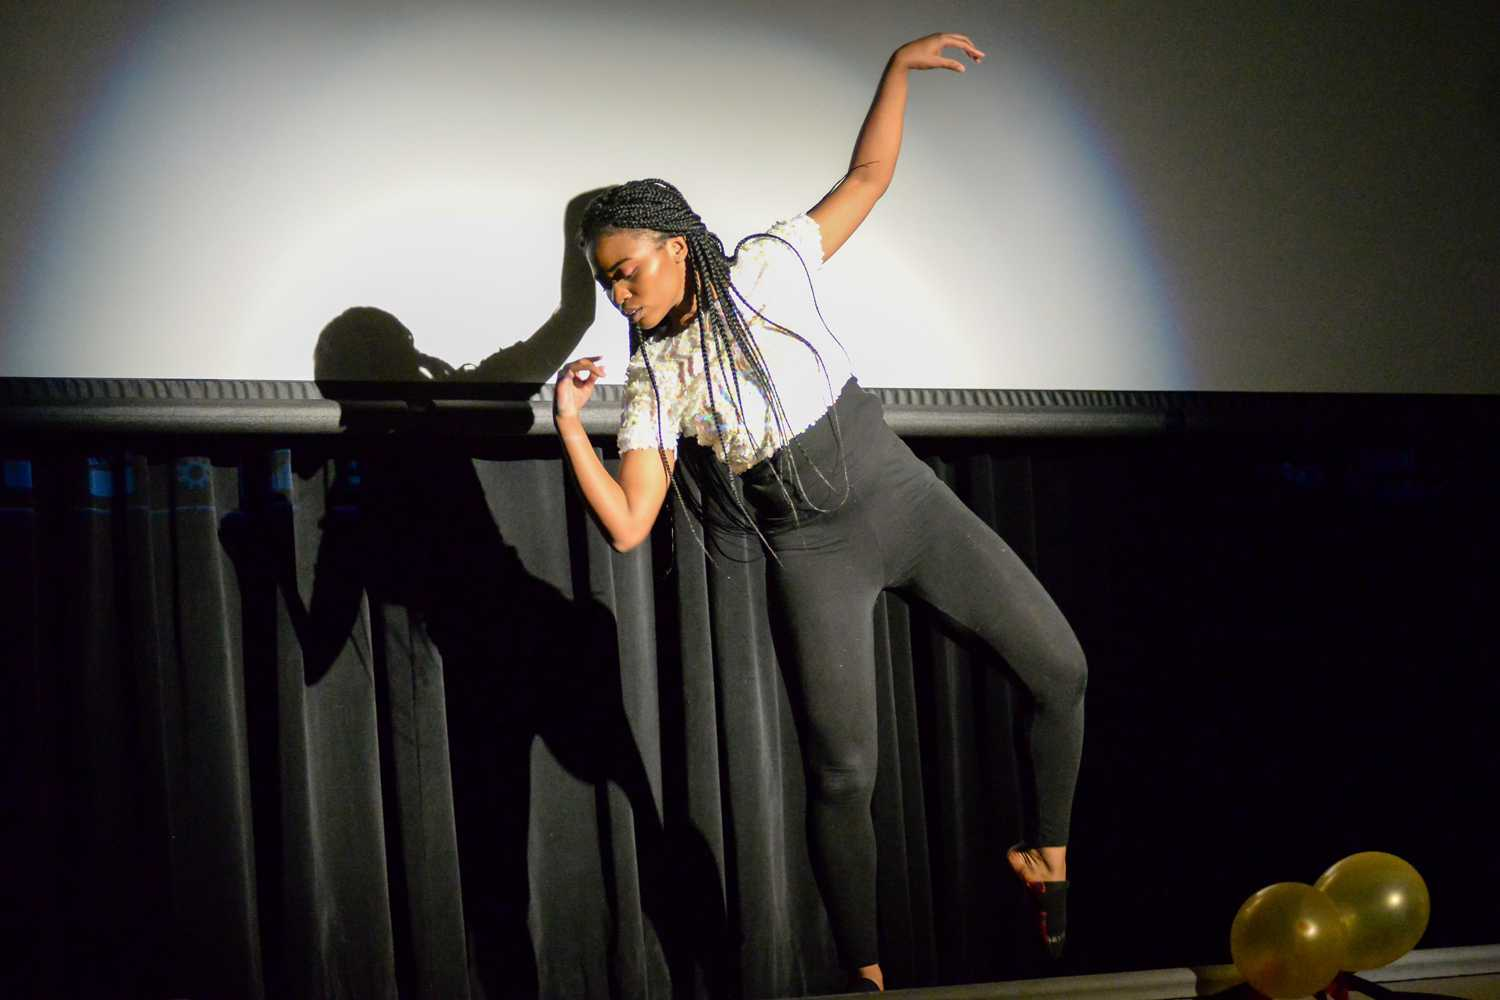 Uyai Akpakpan, representing the country of Somalia, danced to original choreography as her talent portion at the sixth annual African Pageant hosted by the African Students Organization Friday night. (Photo by Issi Glatts | Assistant Visual Editor)